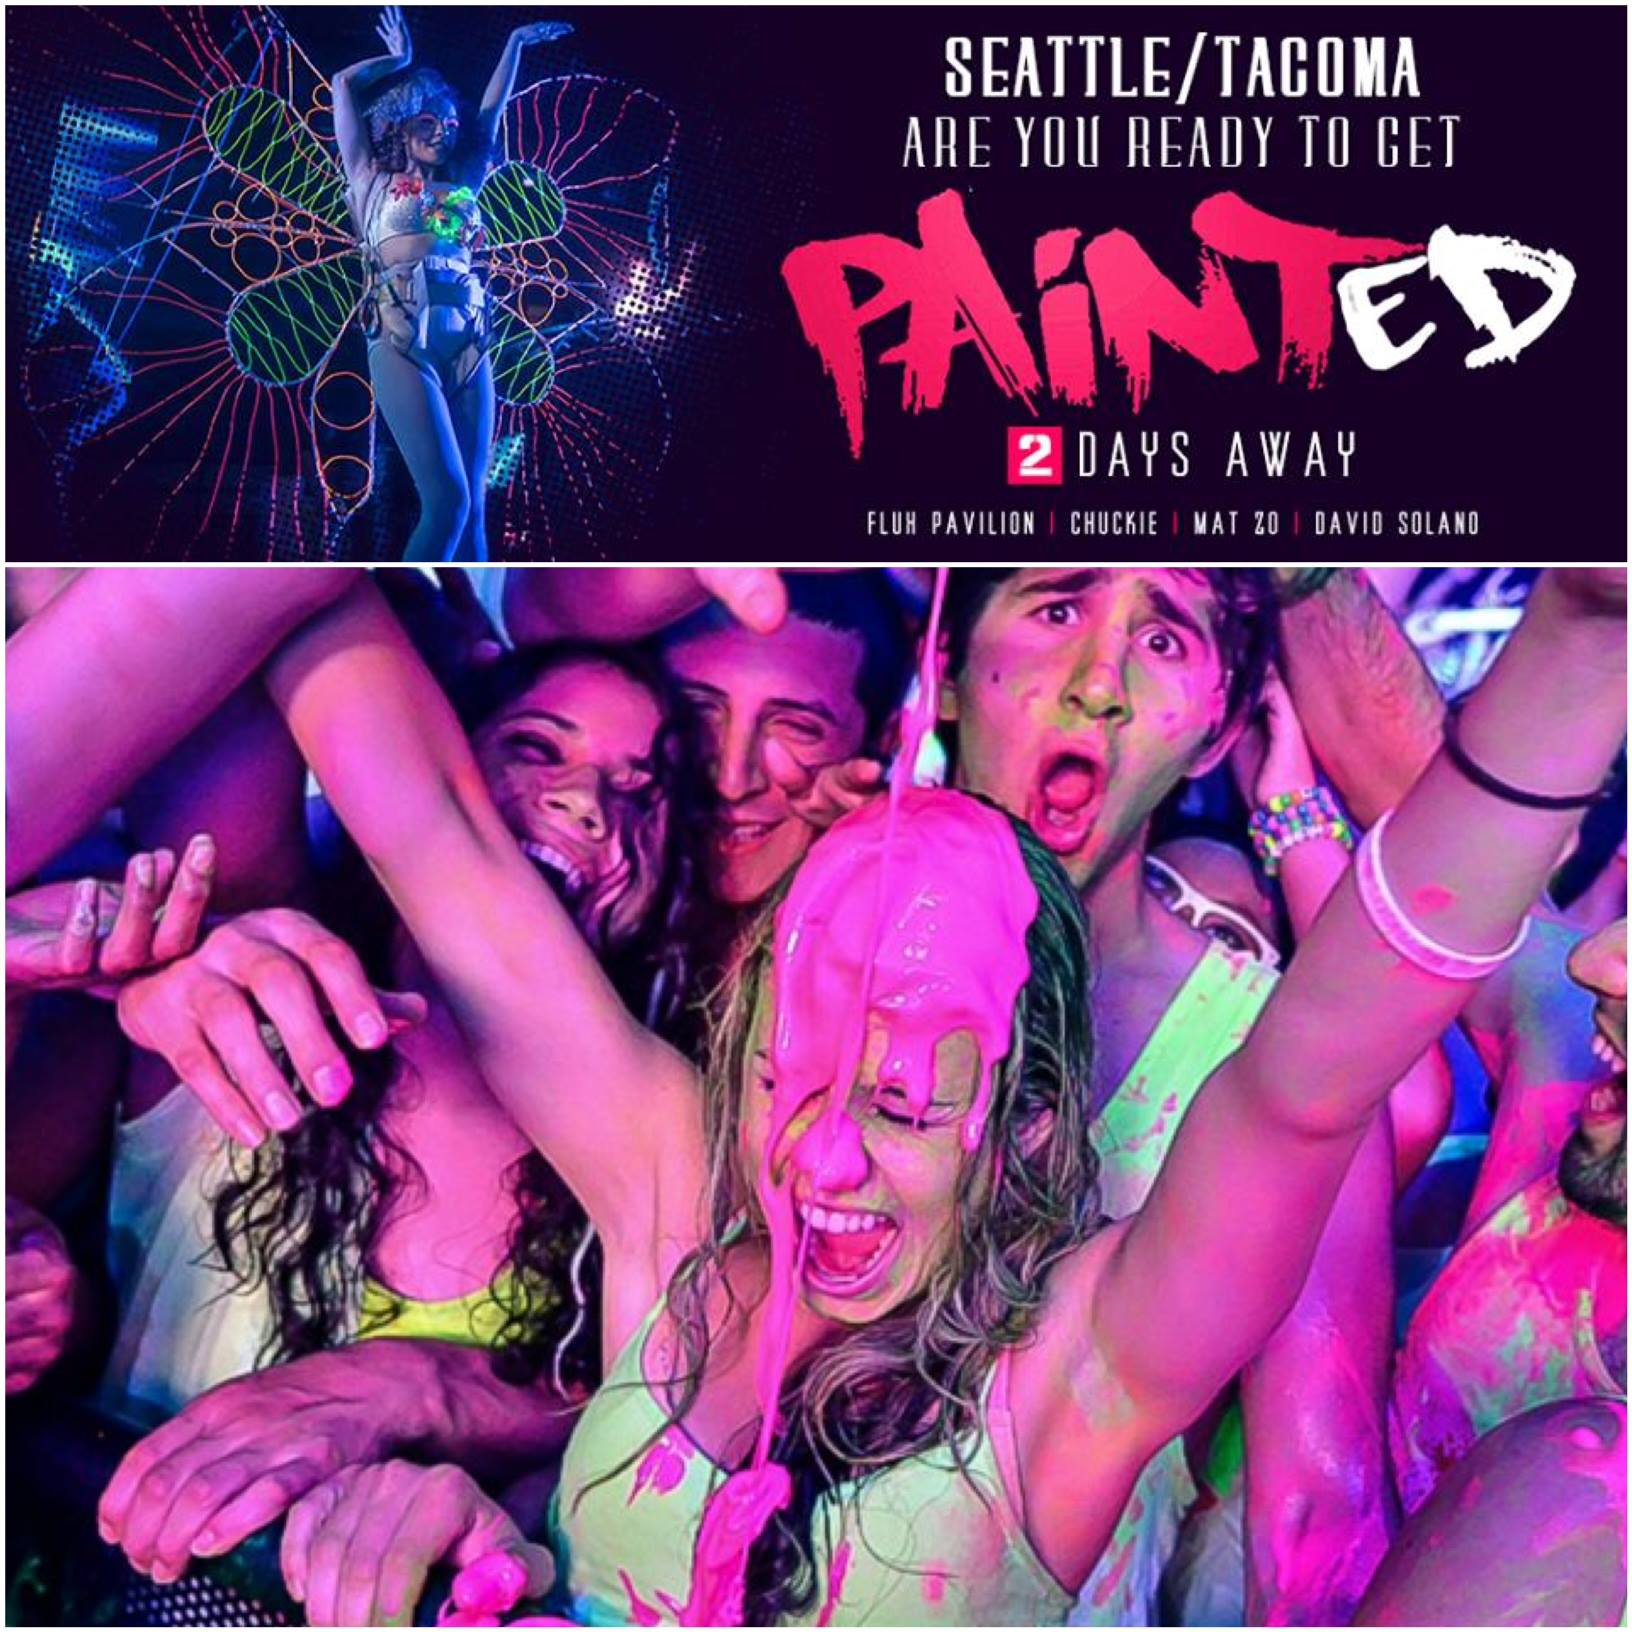 Seattle:  Are You Ready For the PAINT!